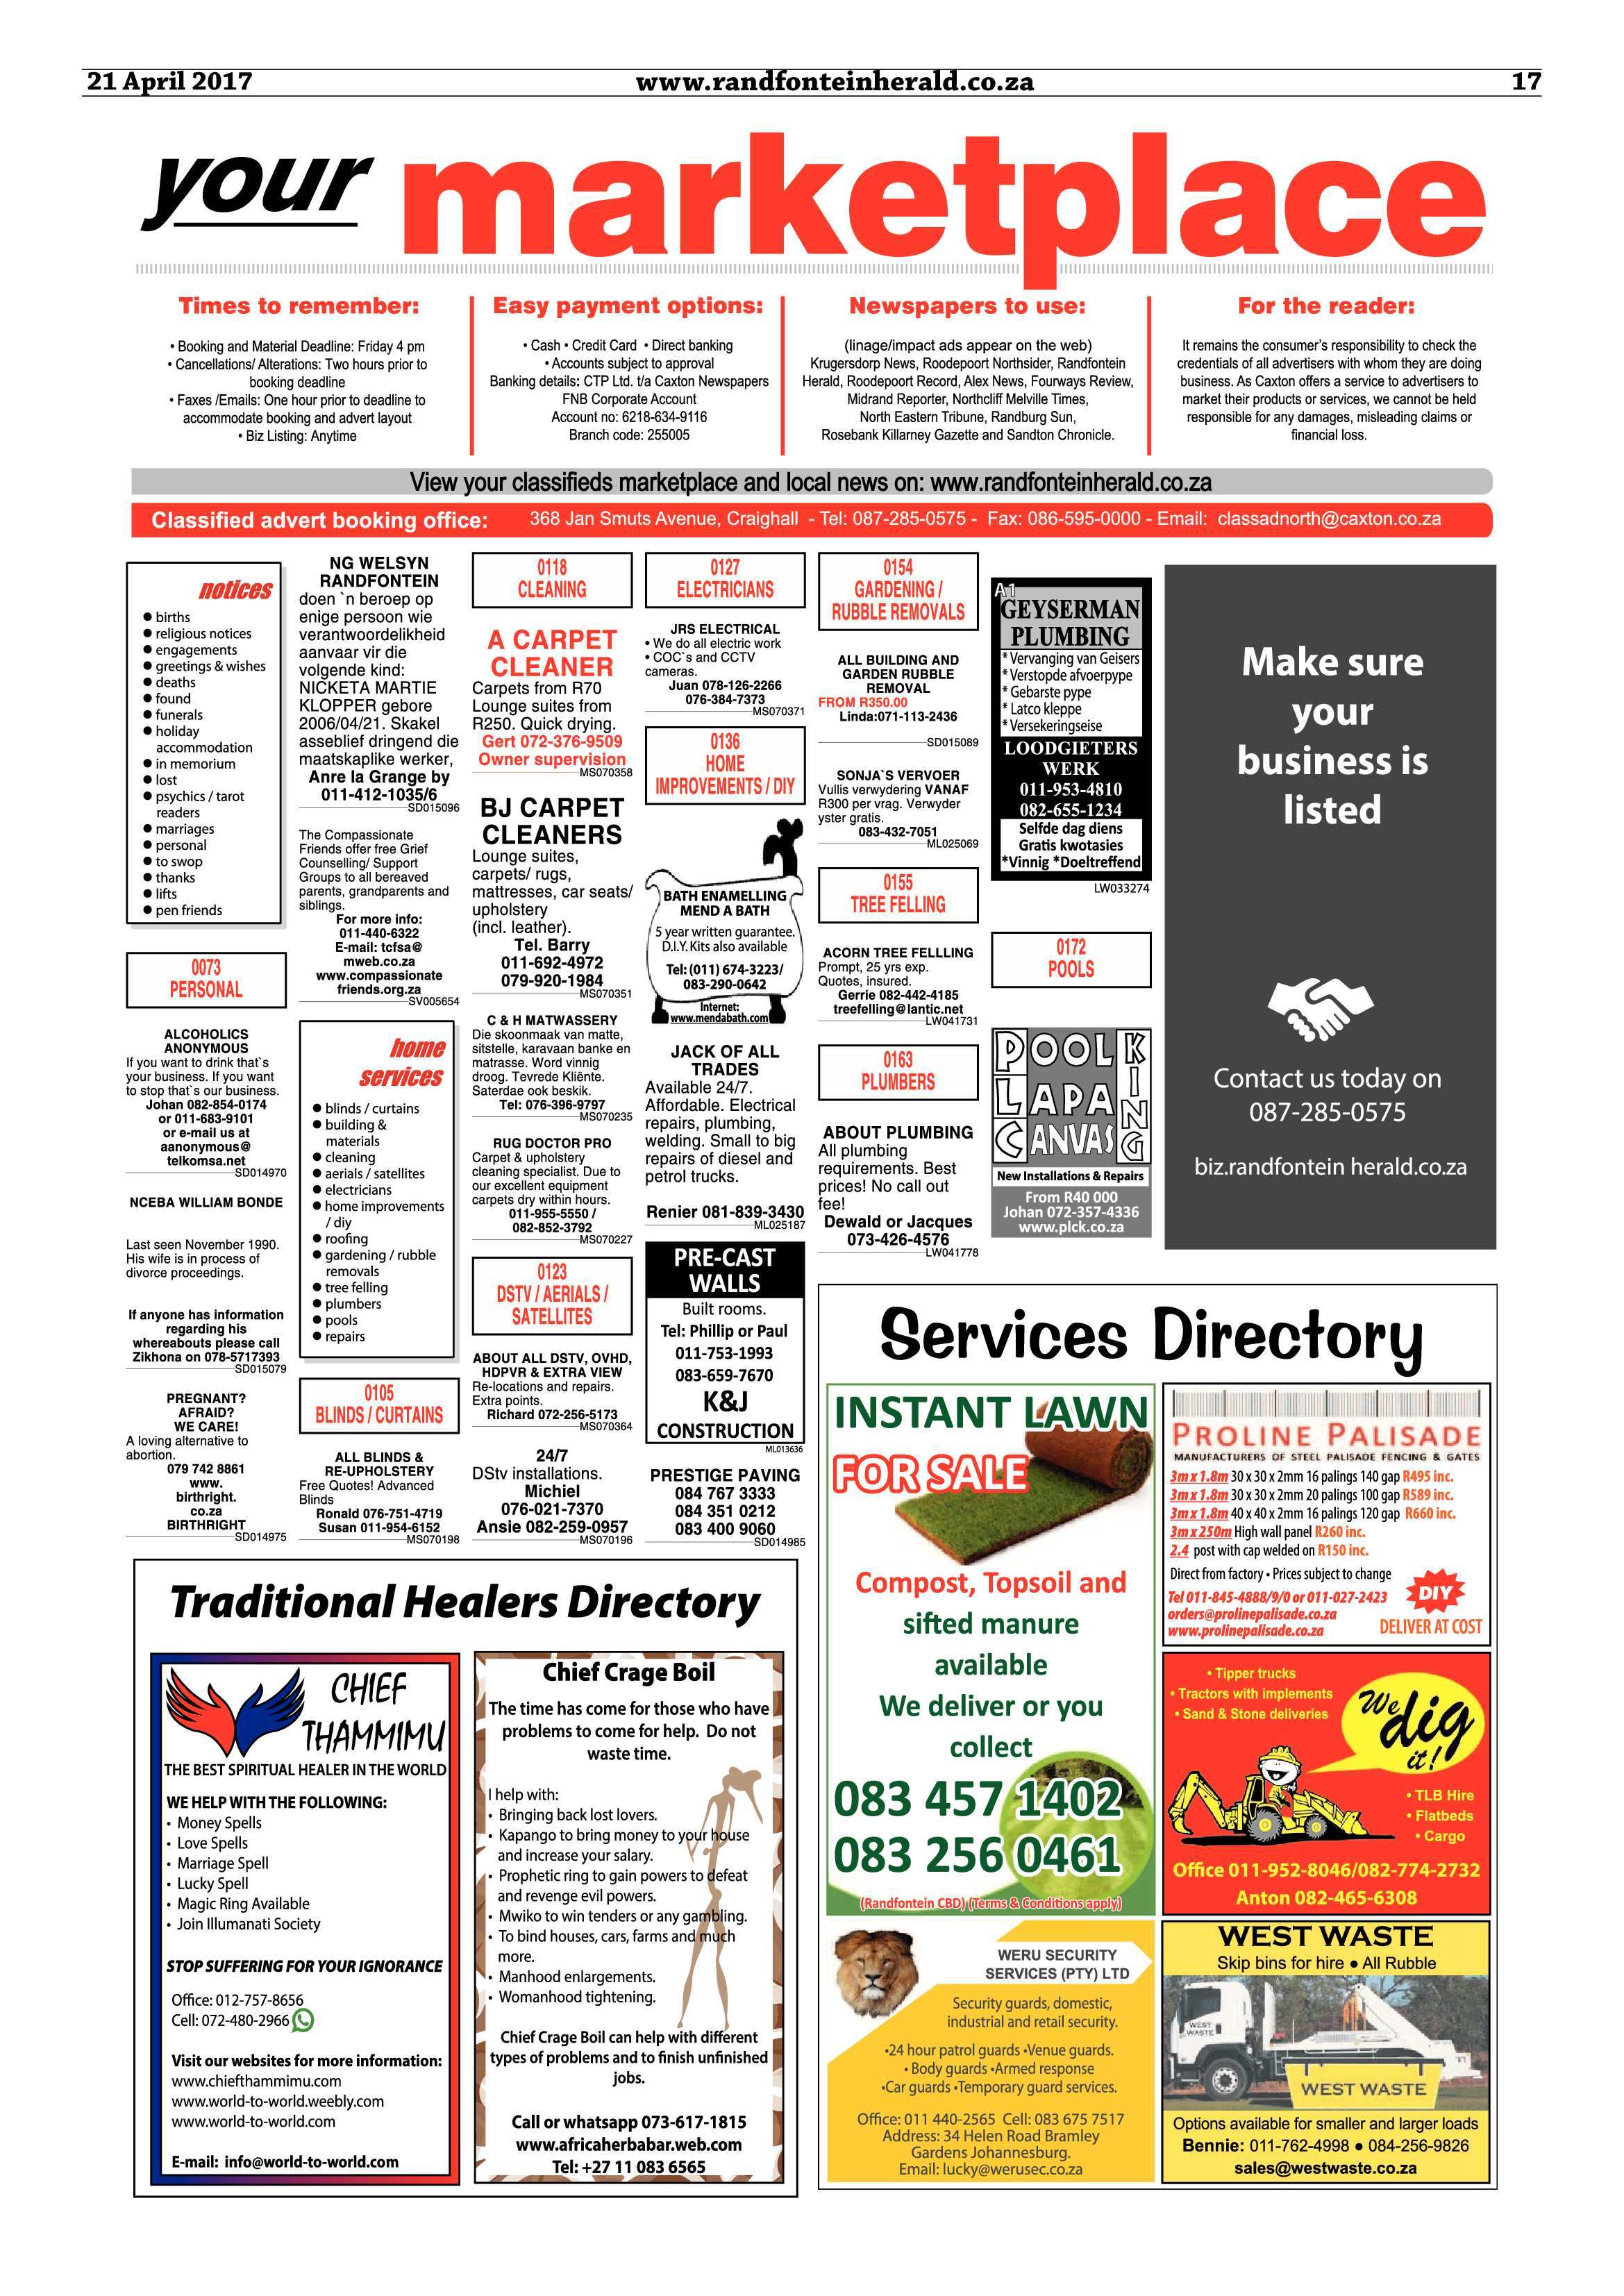 randfontein-herald-21-april-2017-epapers-page-17